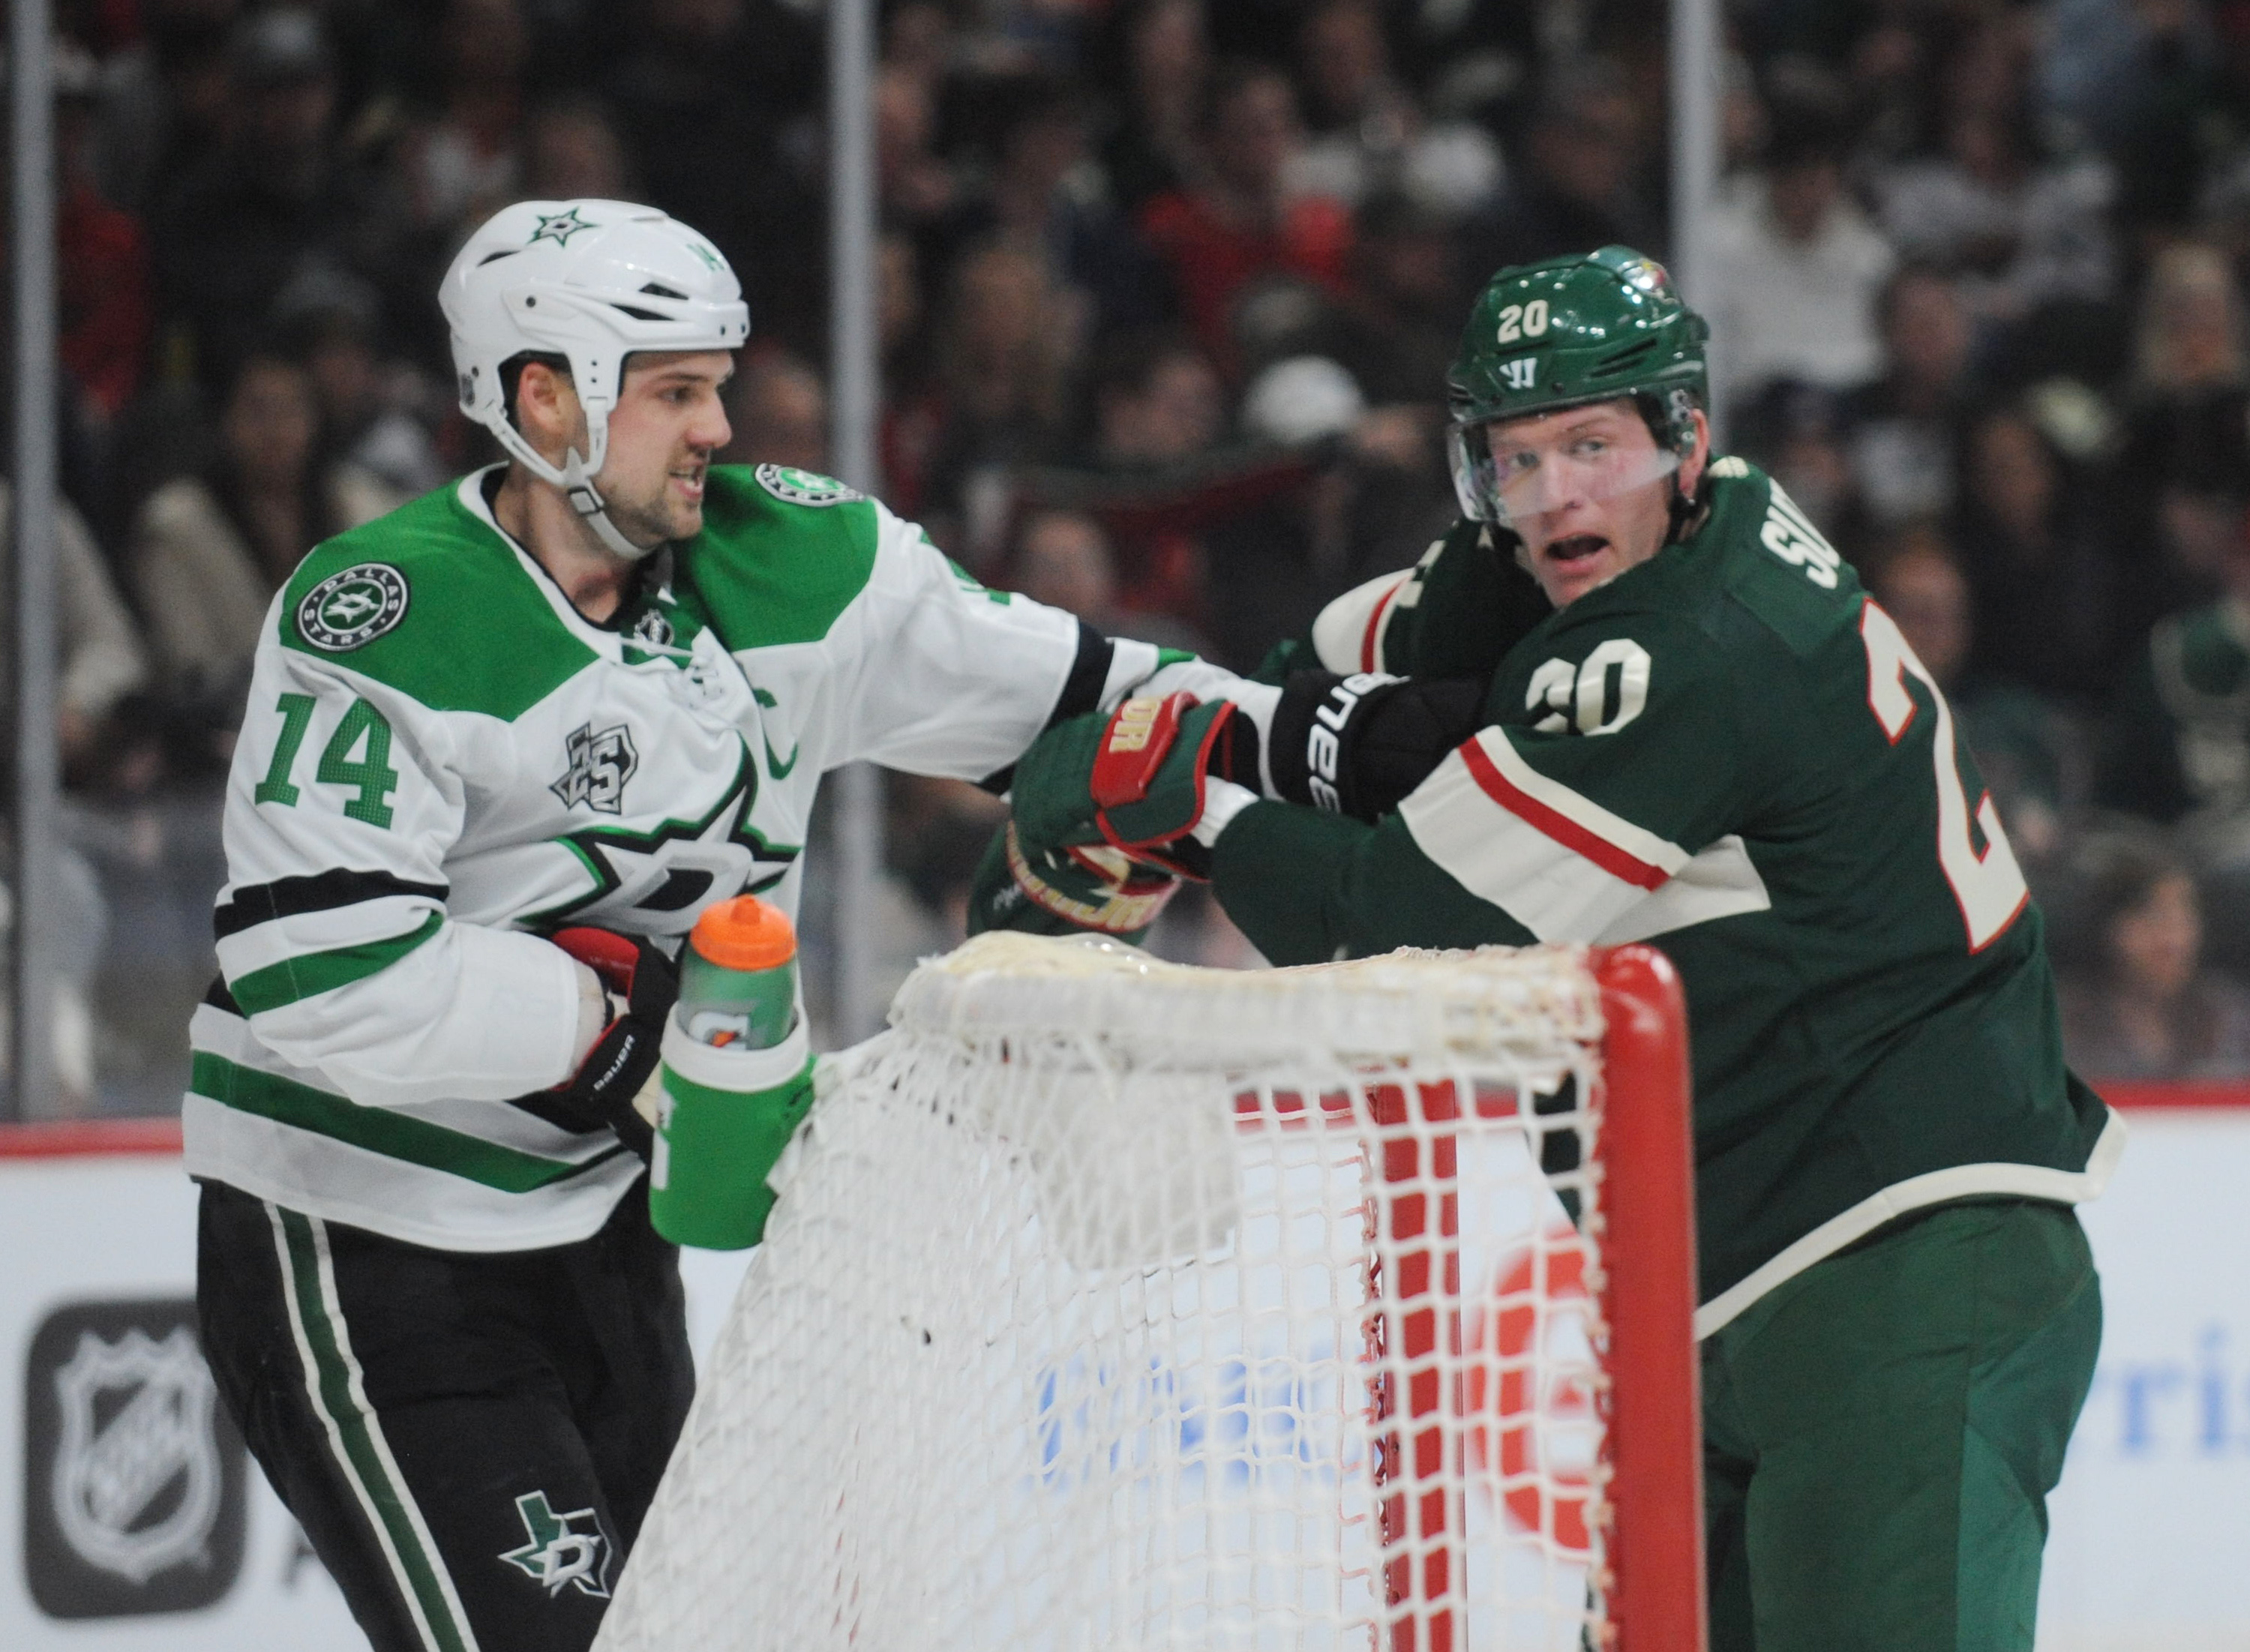 Game Preview: Minnesota Wild vs. Dallas Stars 3/31/18 @ 7:00PM CST at American Airlines Arena